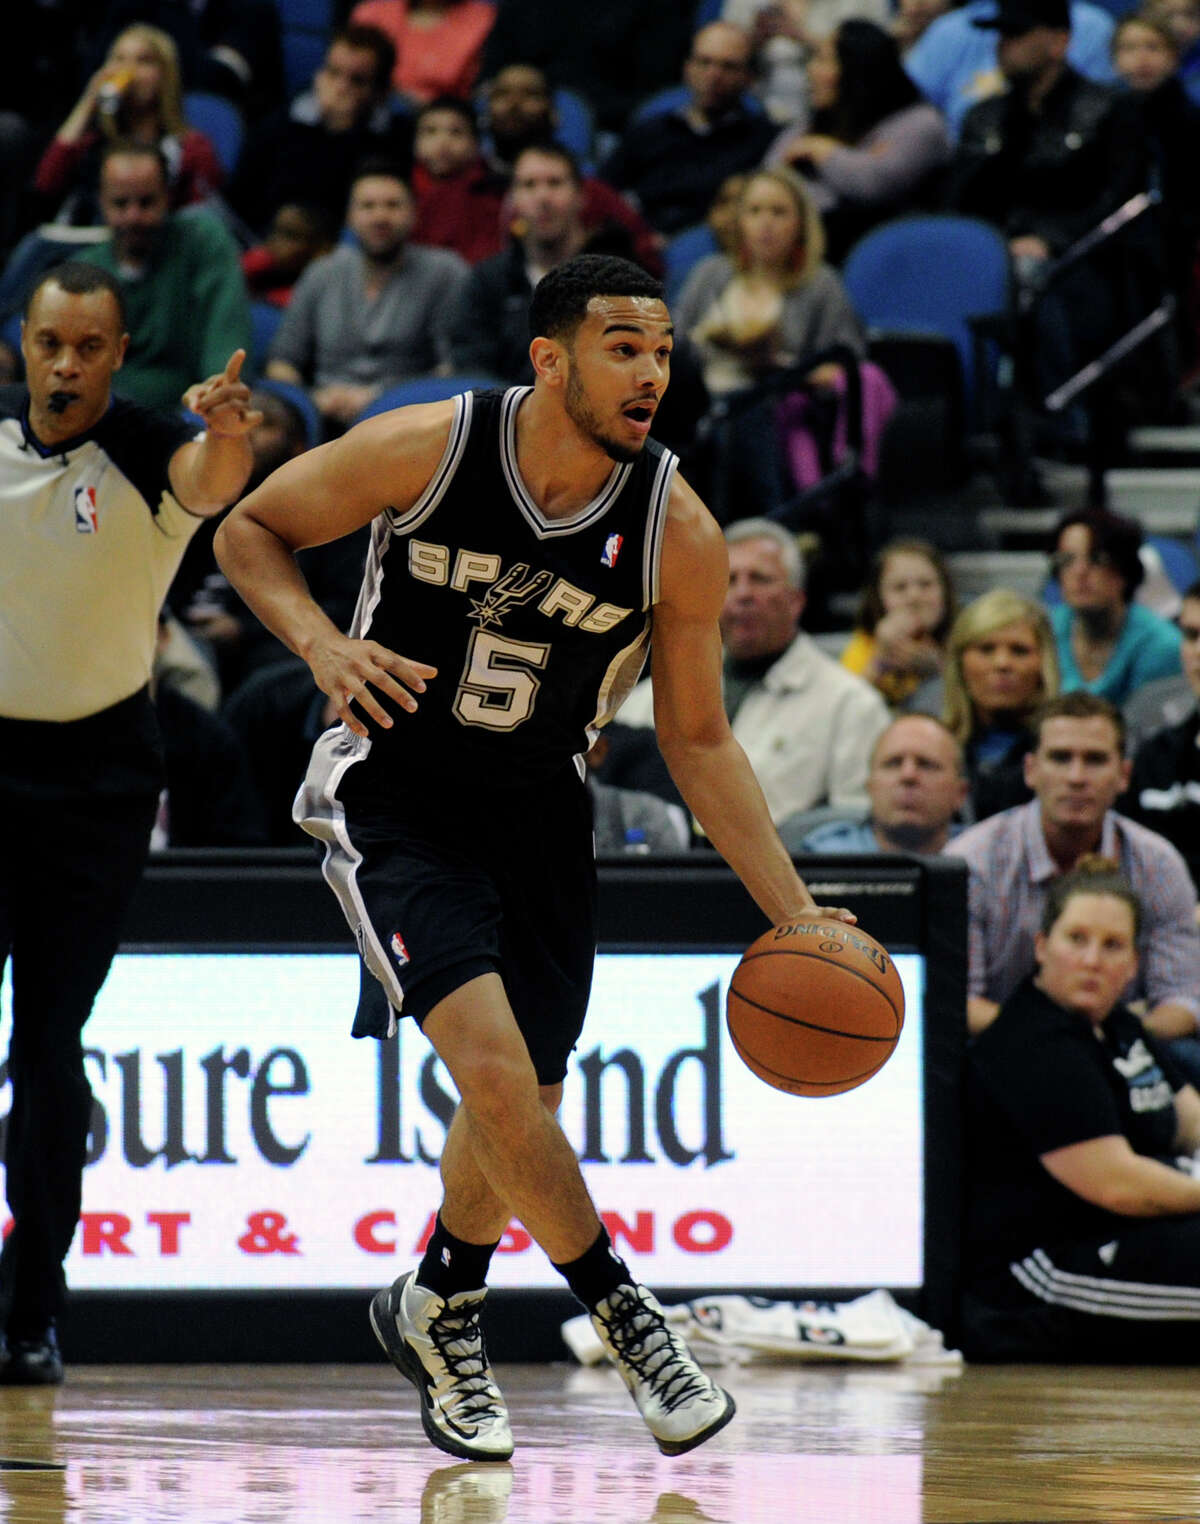 San Antonio Spurs guard Cory Joseph (5) dribbles in an NBA basketball game against the Minnesota Timberwolves at the Target Center on in Minneapolis on Tuesday, April 8, 2014. (AP Photo/Hannah Foslien)